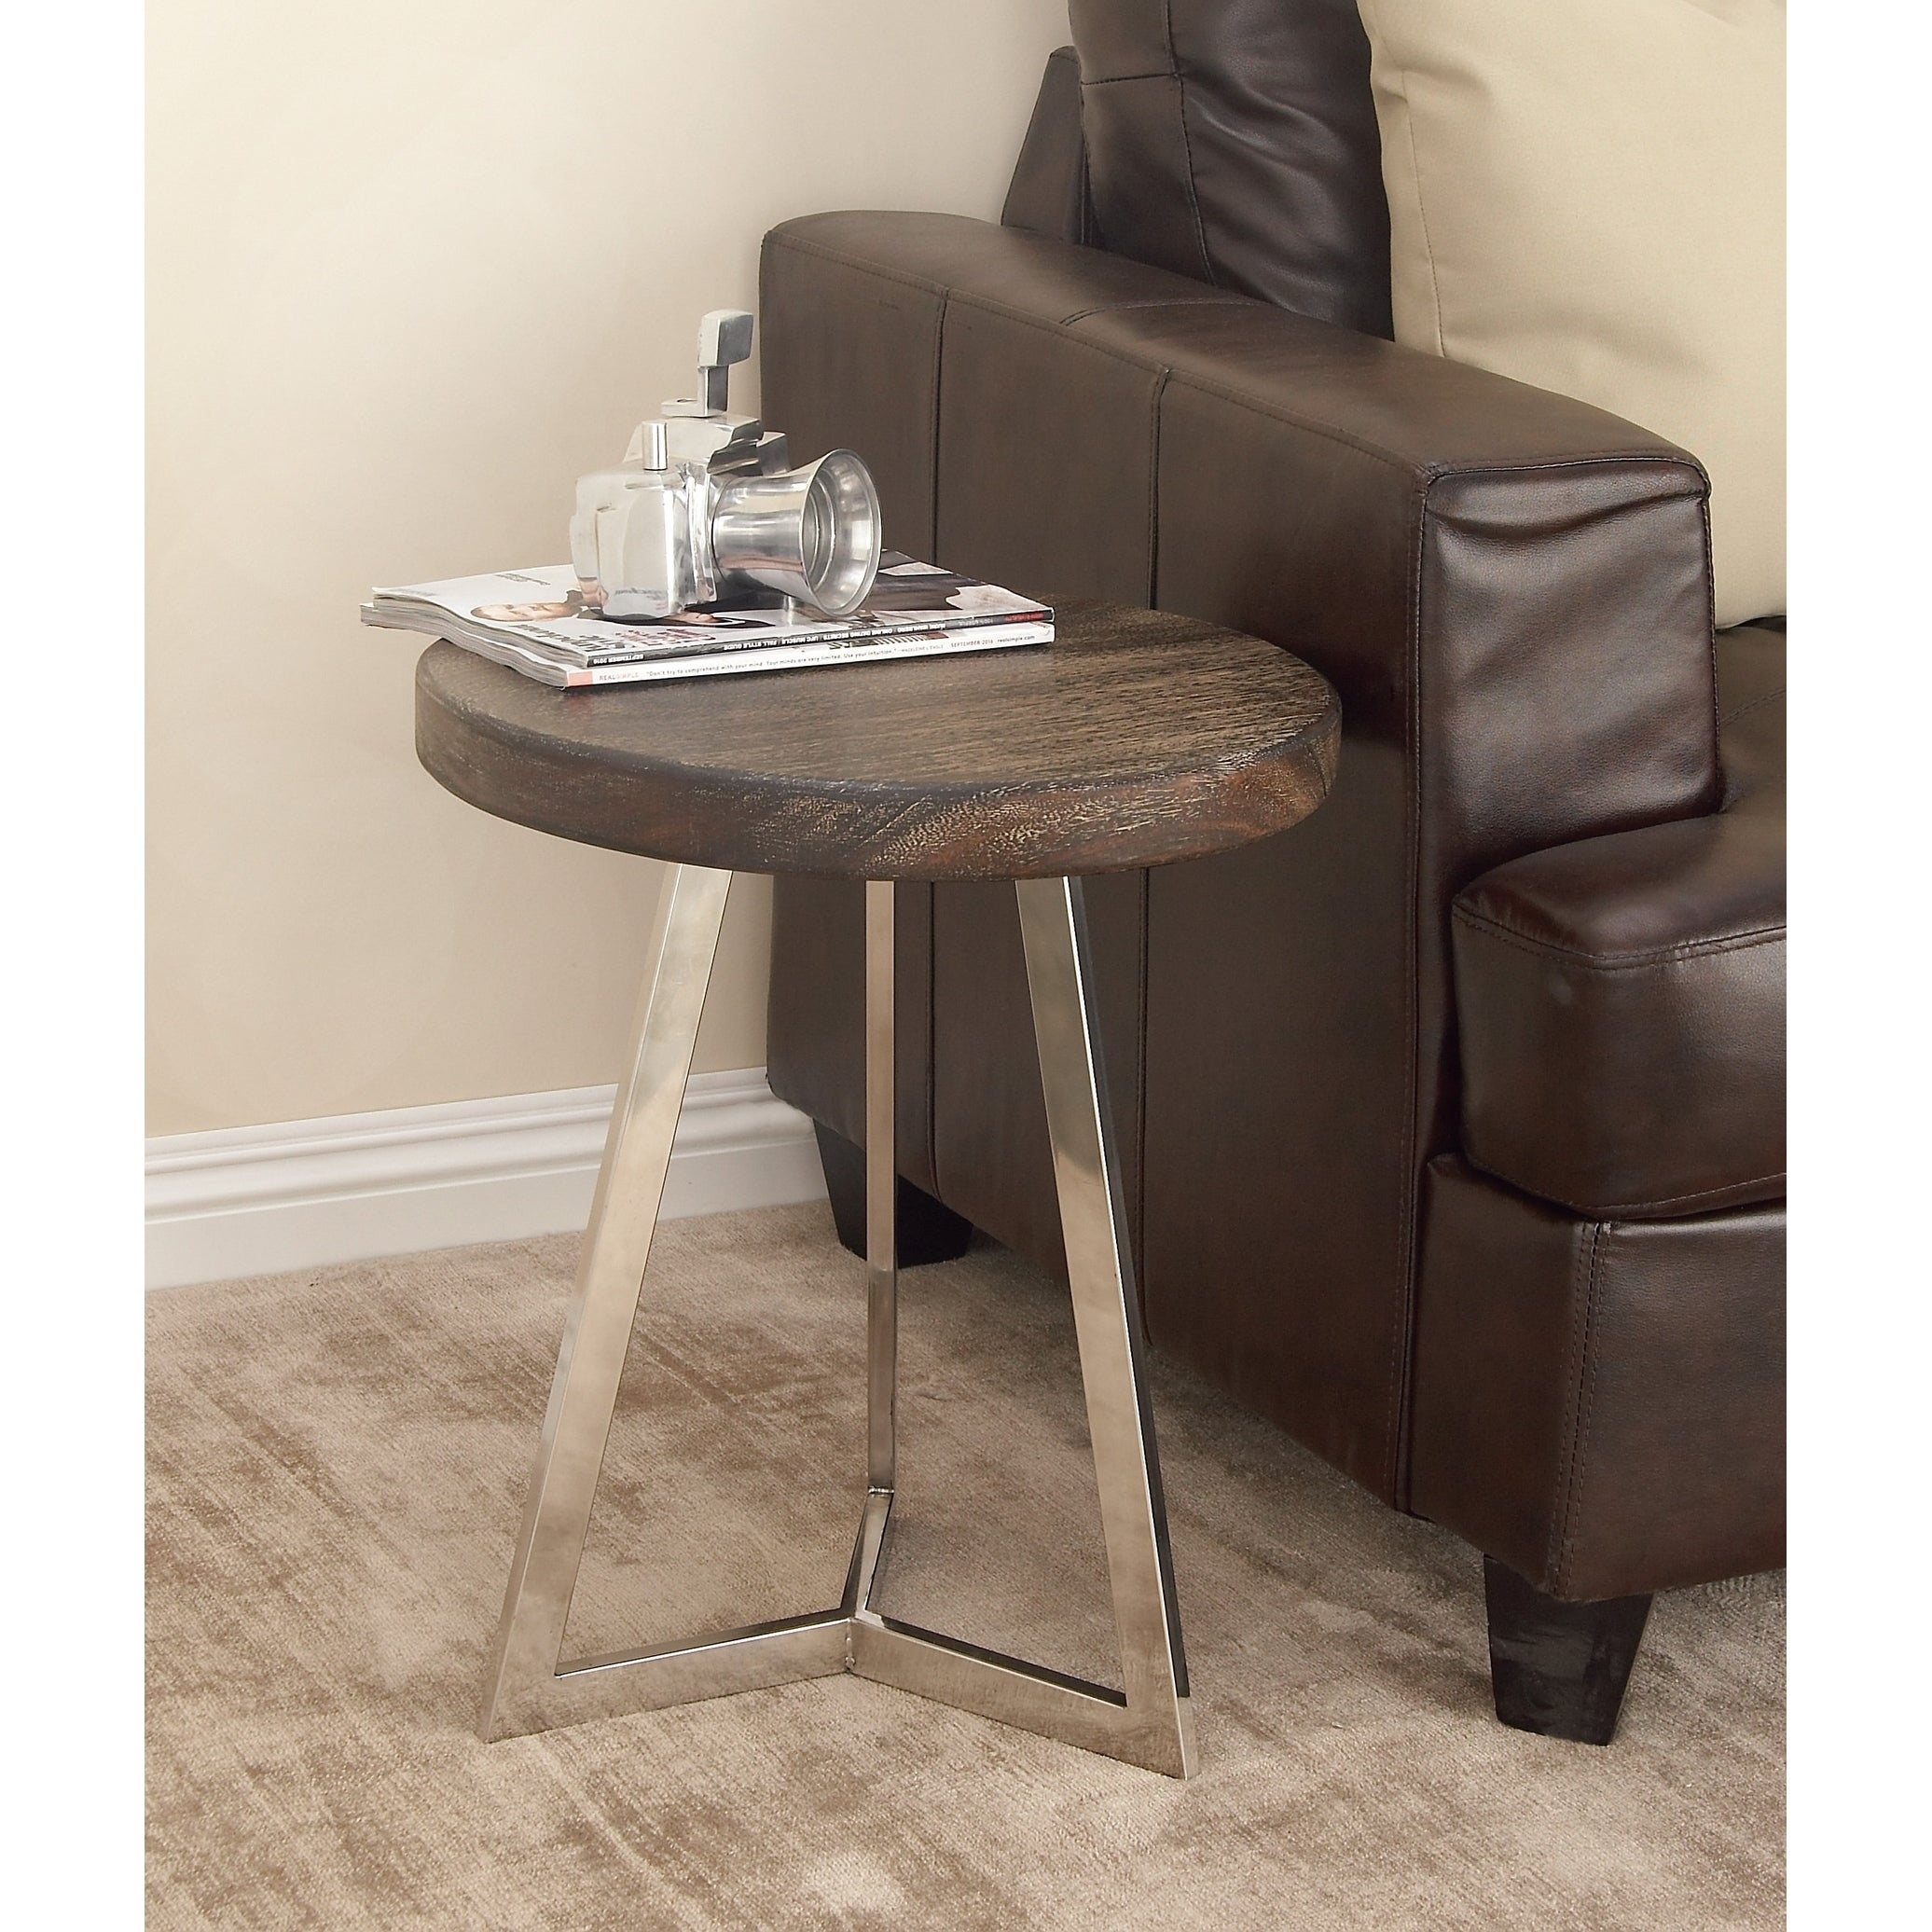 Shop Studio 350 Stainless Steel Wood Accent Table 18 inches wide